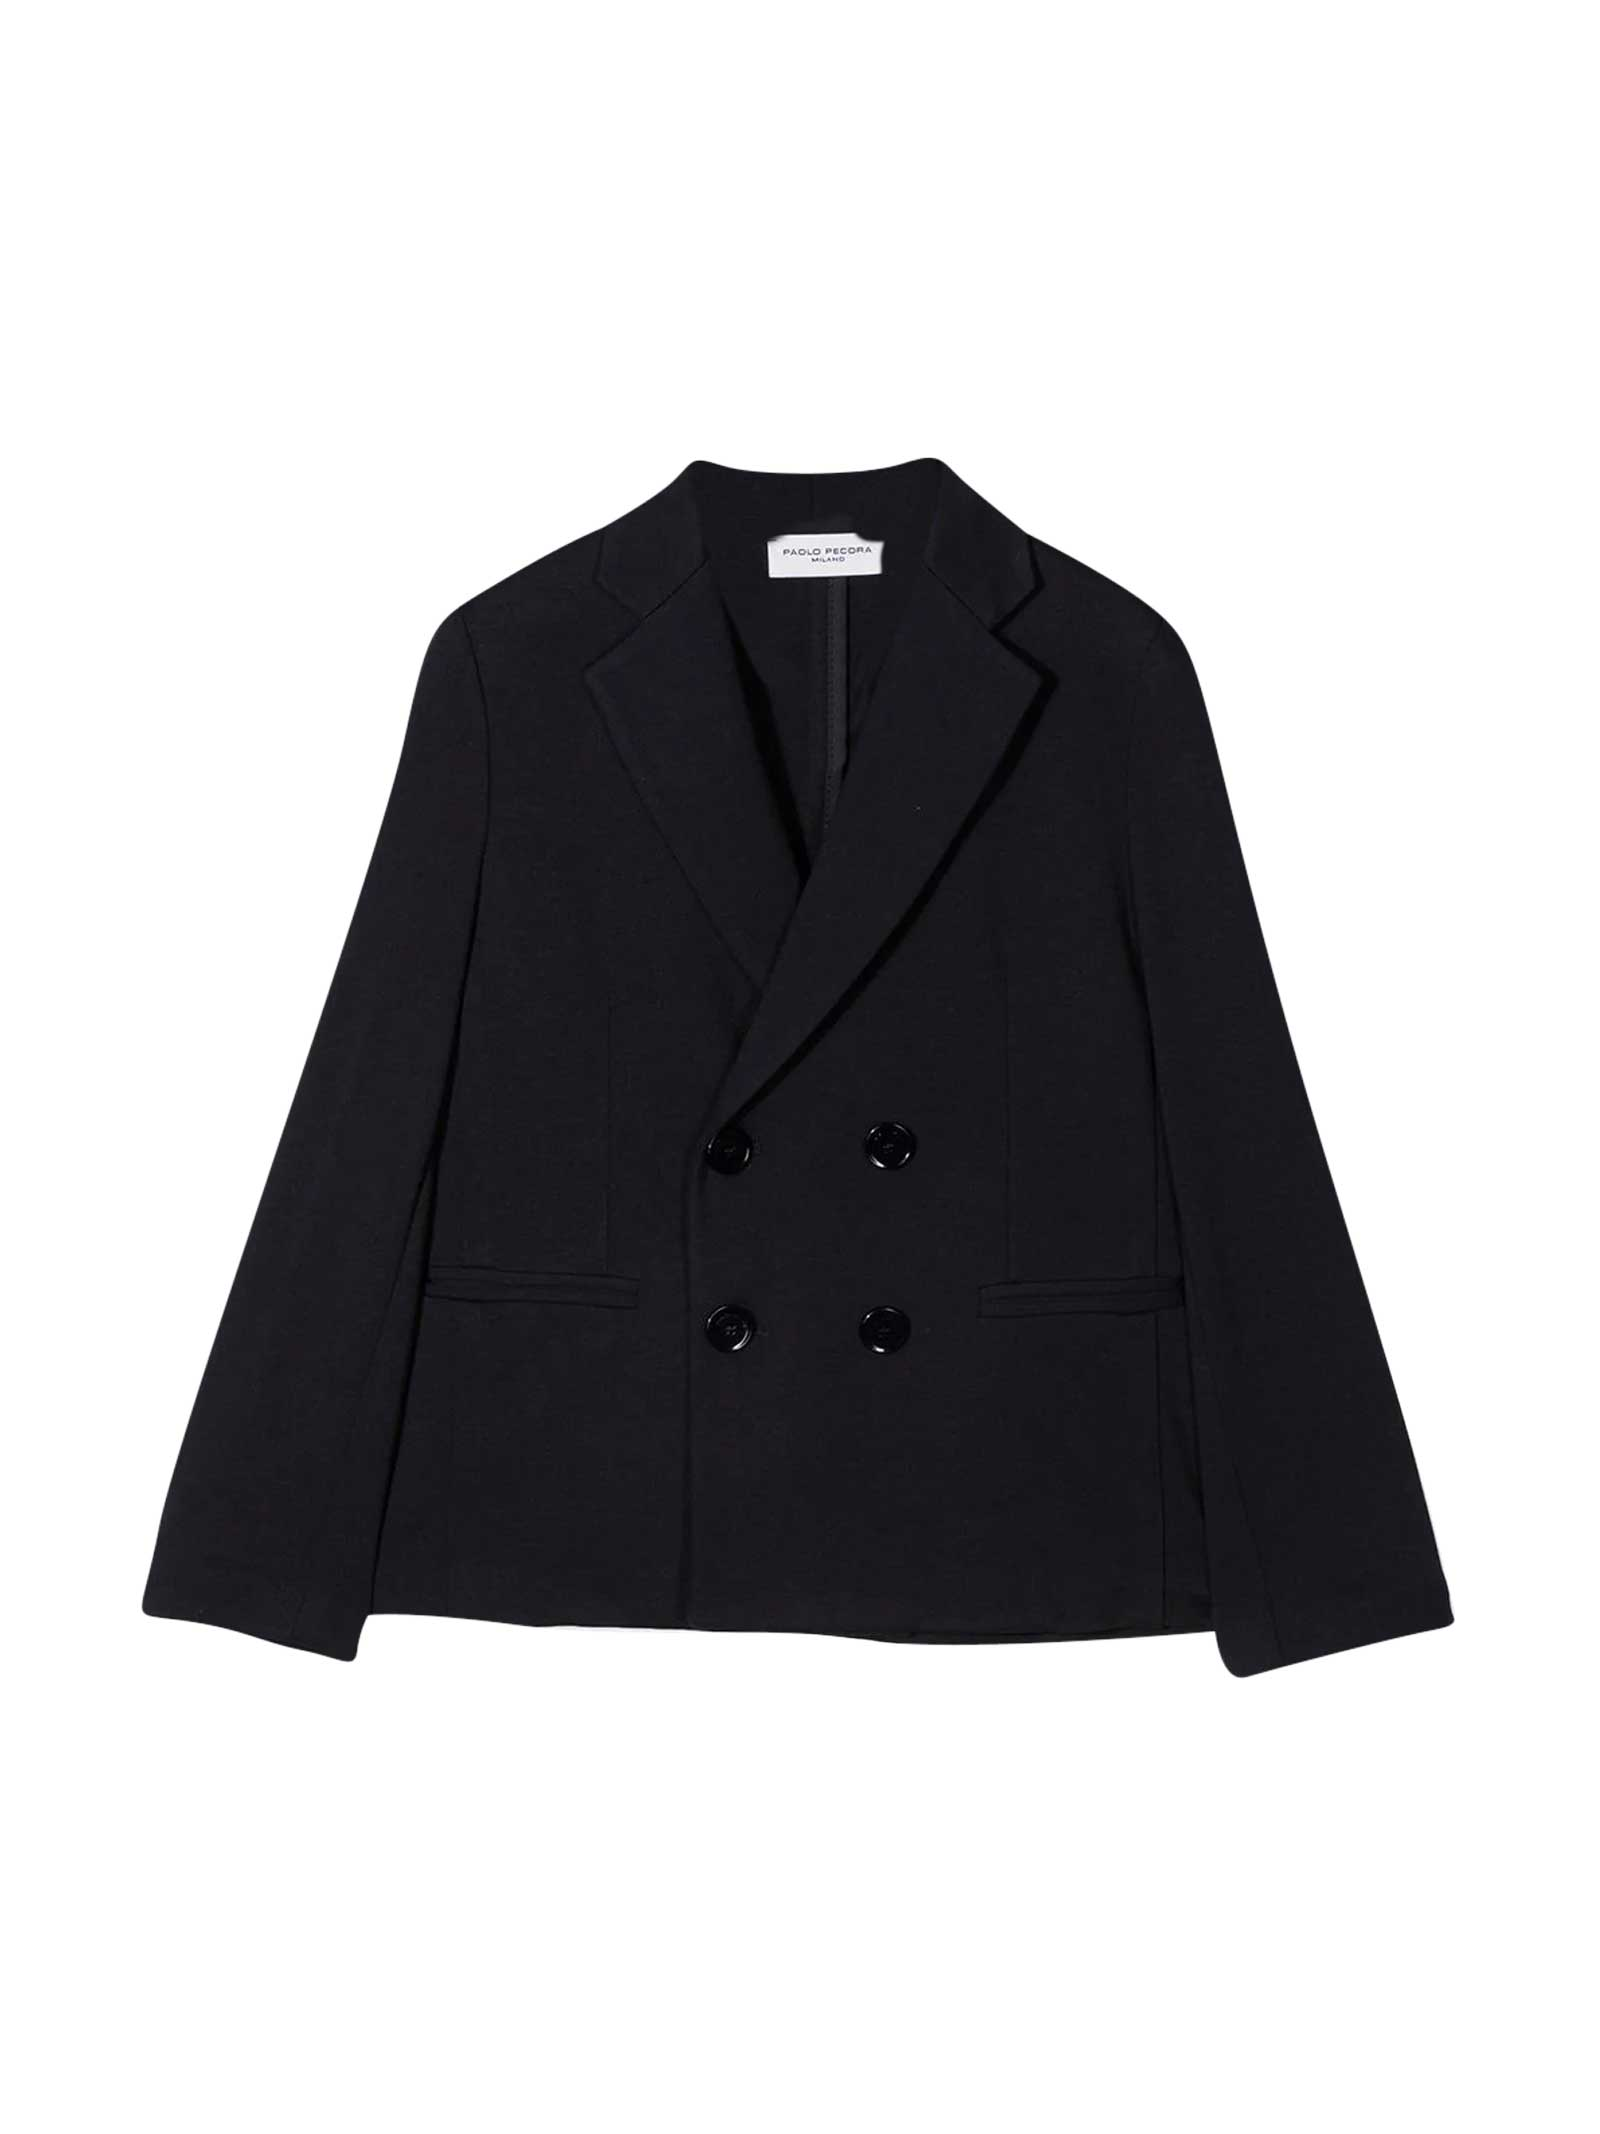 Paolo Pecora Double-breasted Tailored Teen Blazer